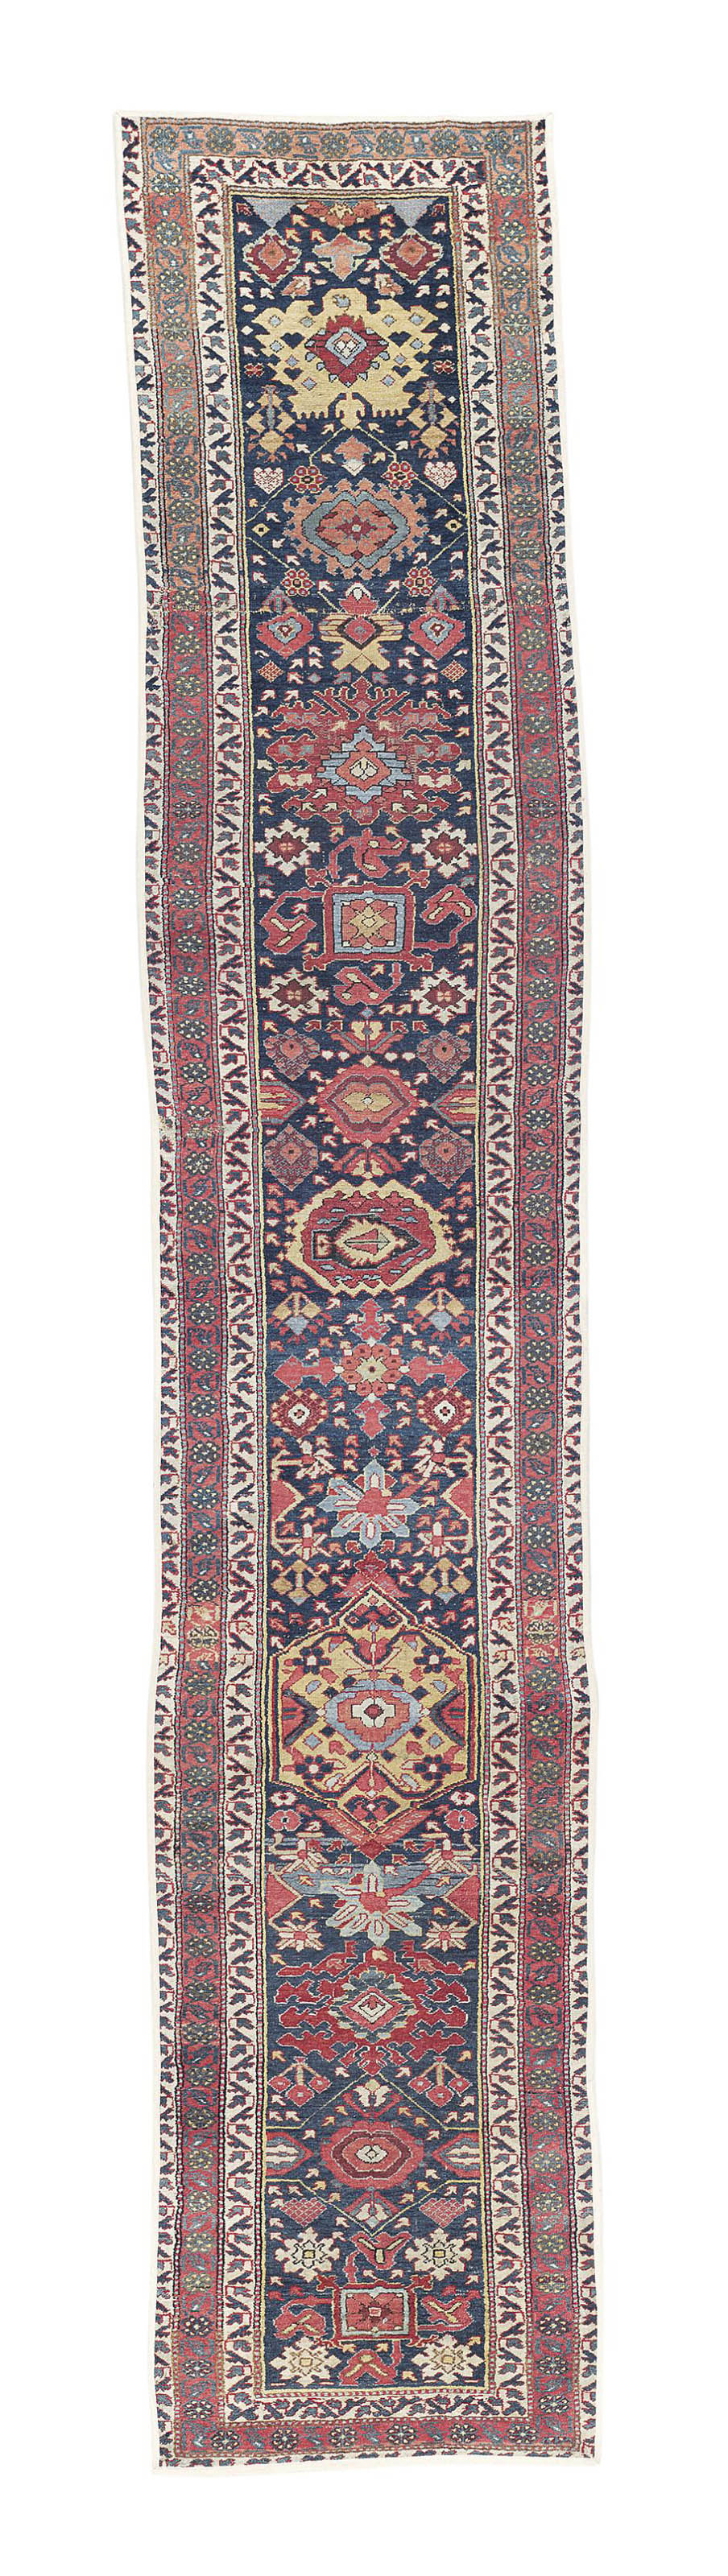 A NORTH-WEST PERSIAN RUNNER, 20TH CENTURY